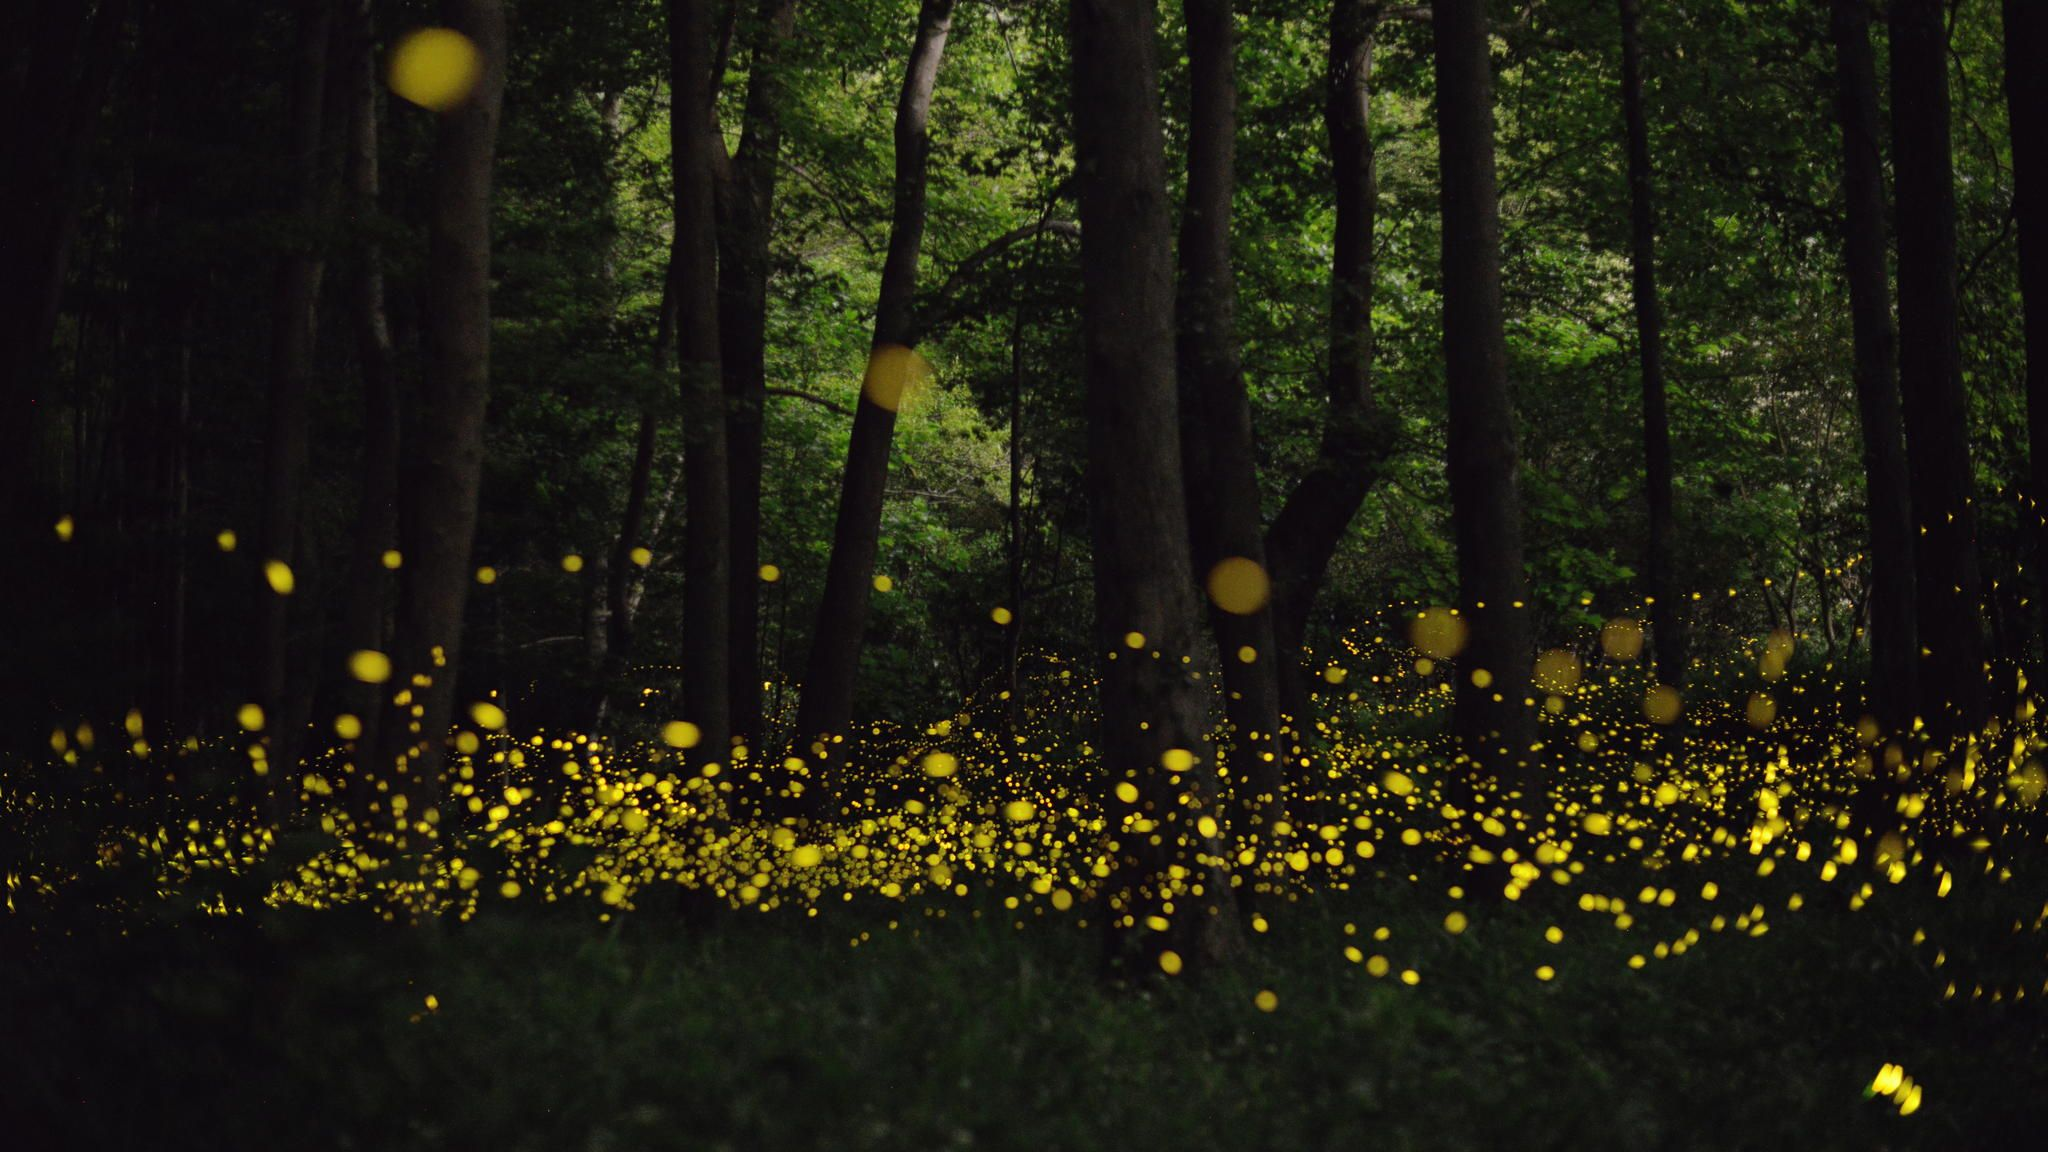 Fireflies Illuminating A Dark Forest By Amateur Photographer Tsuneaki Hiramatsu Who Spent His Summer Evenings In The Forests Outside Niimi